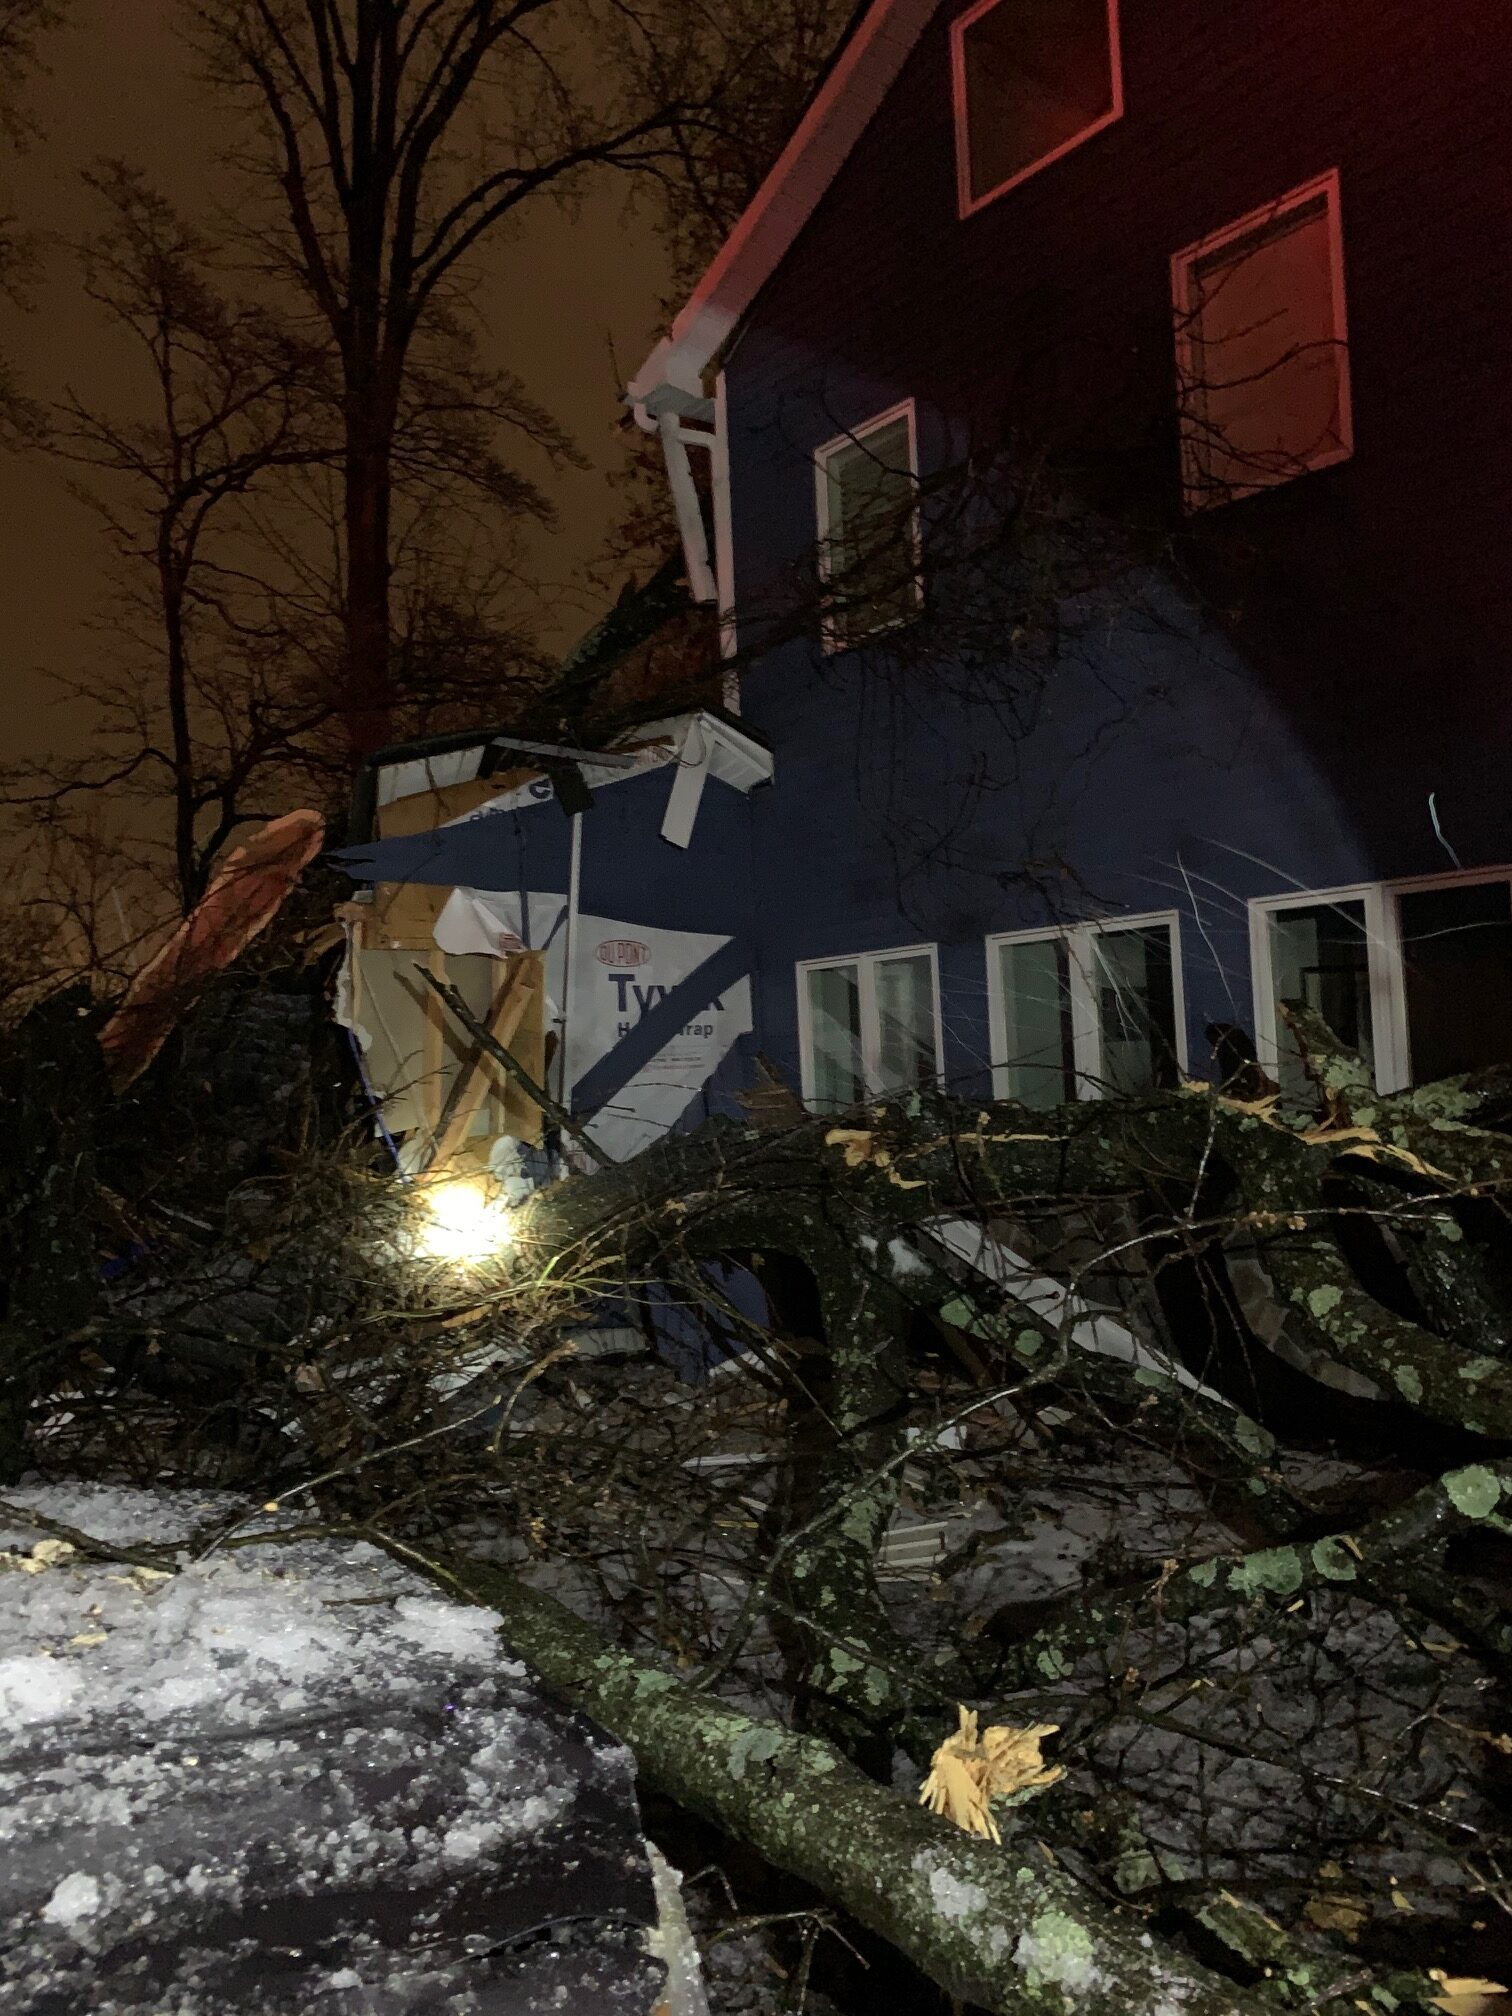 Home damaged due to a severe storm.